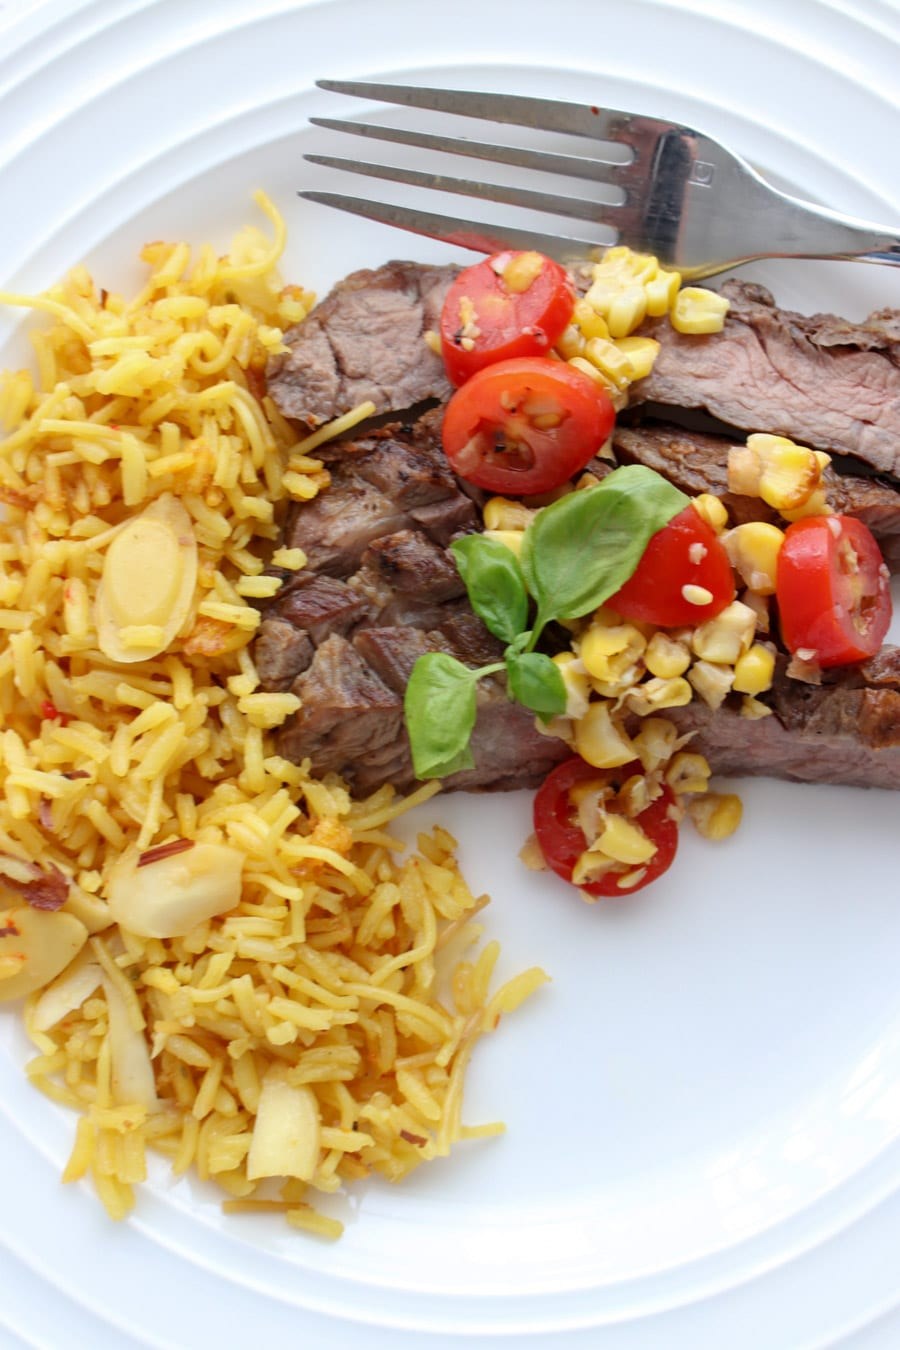 plate of skirt steak topped with salsa with a side of yellow rice